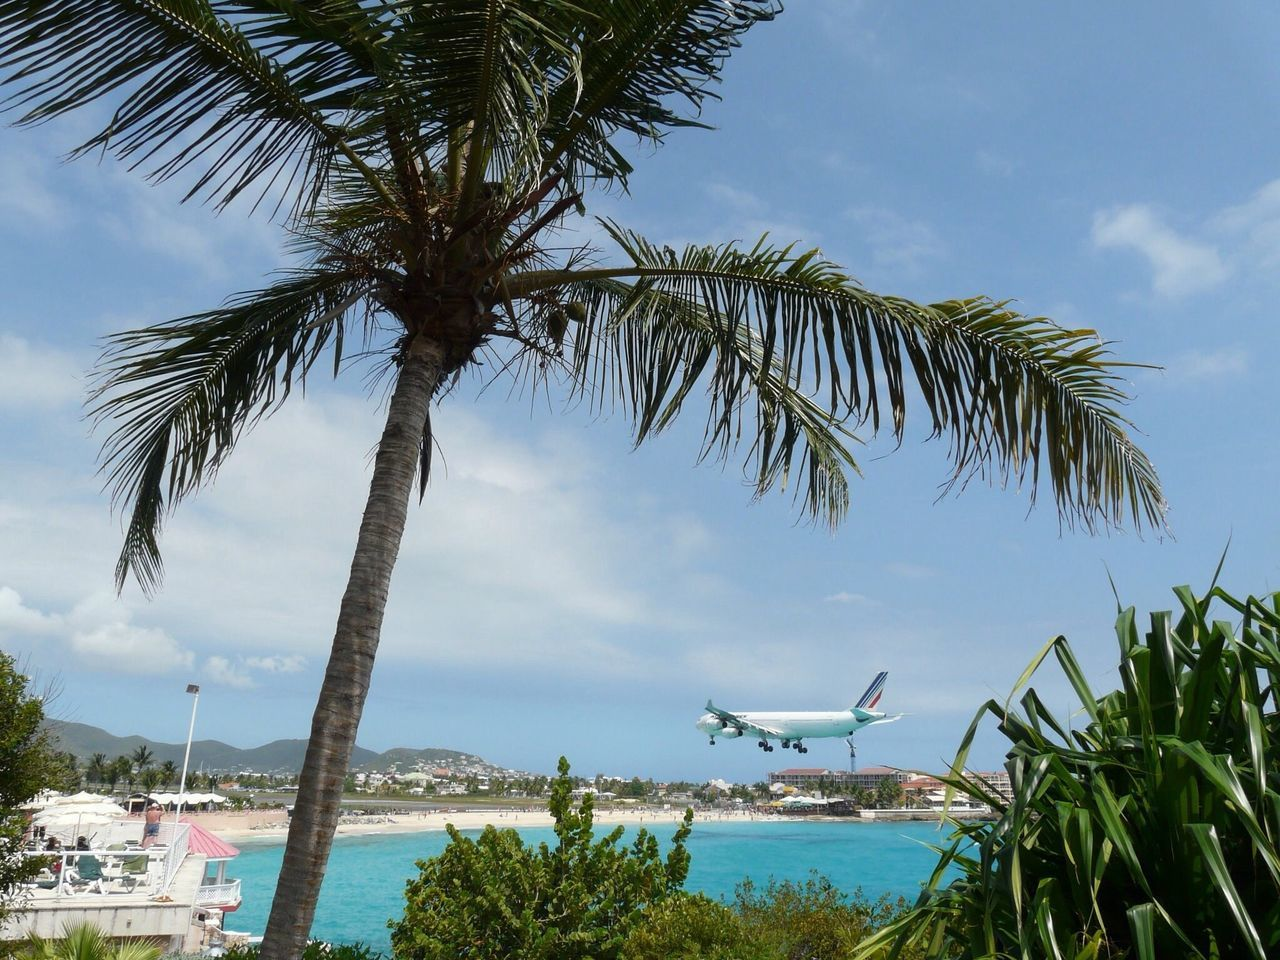 Airport Beach St. Maarten Carribean Beach Landing AirPlane ✈